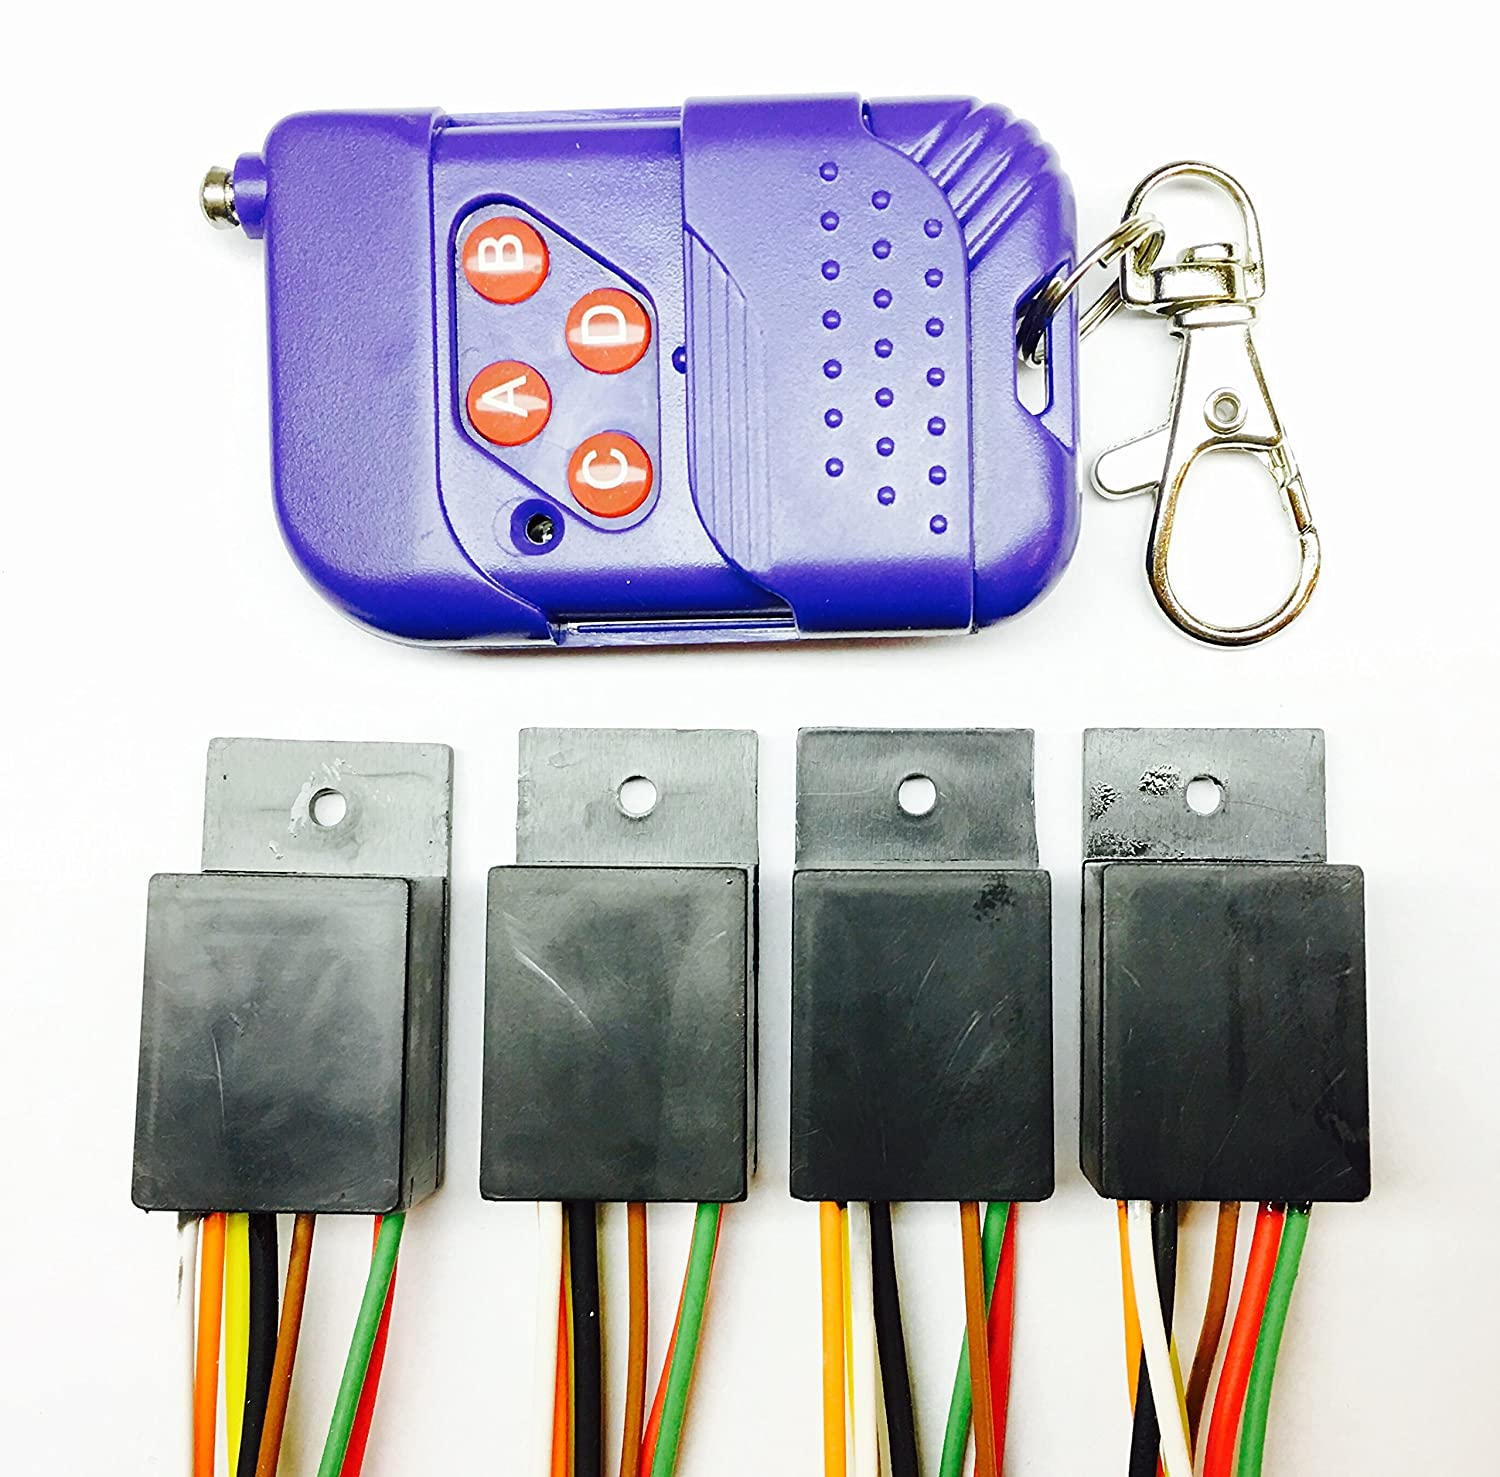 Amazon.com : 4x RF Remote Controlled Programmable Decoy Timers for